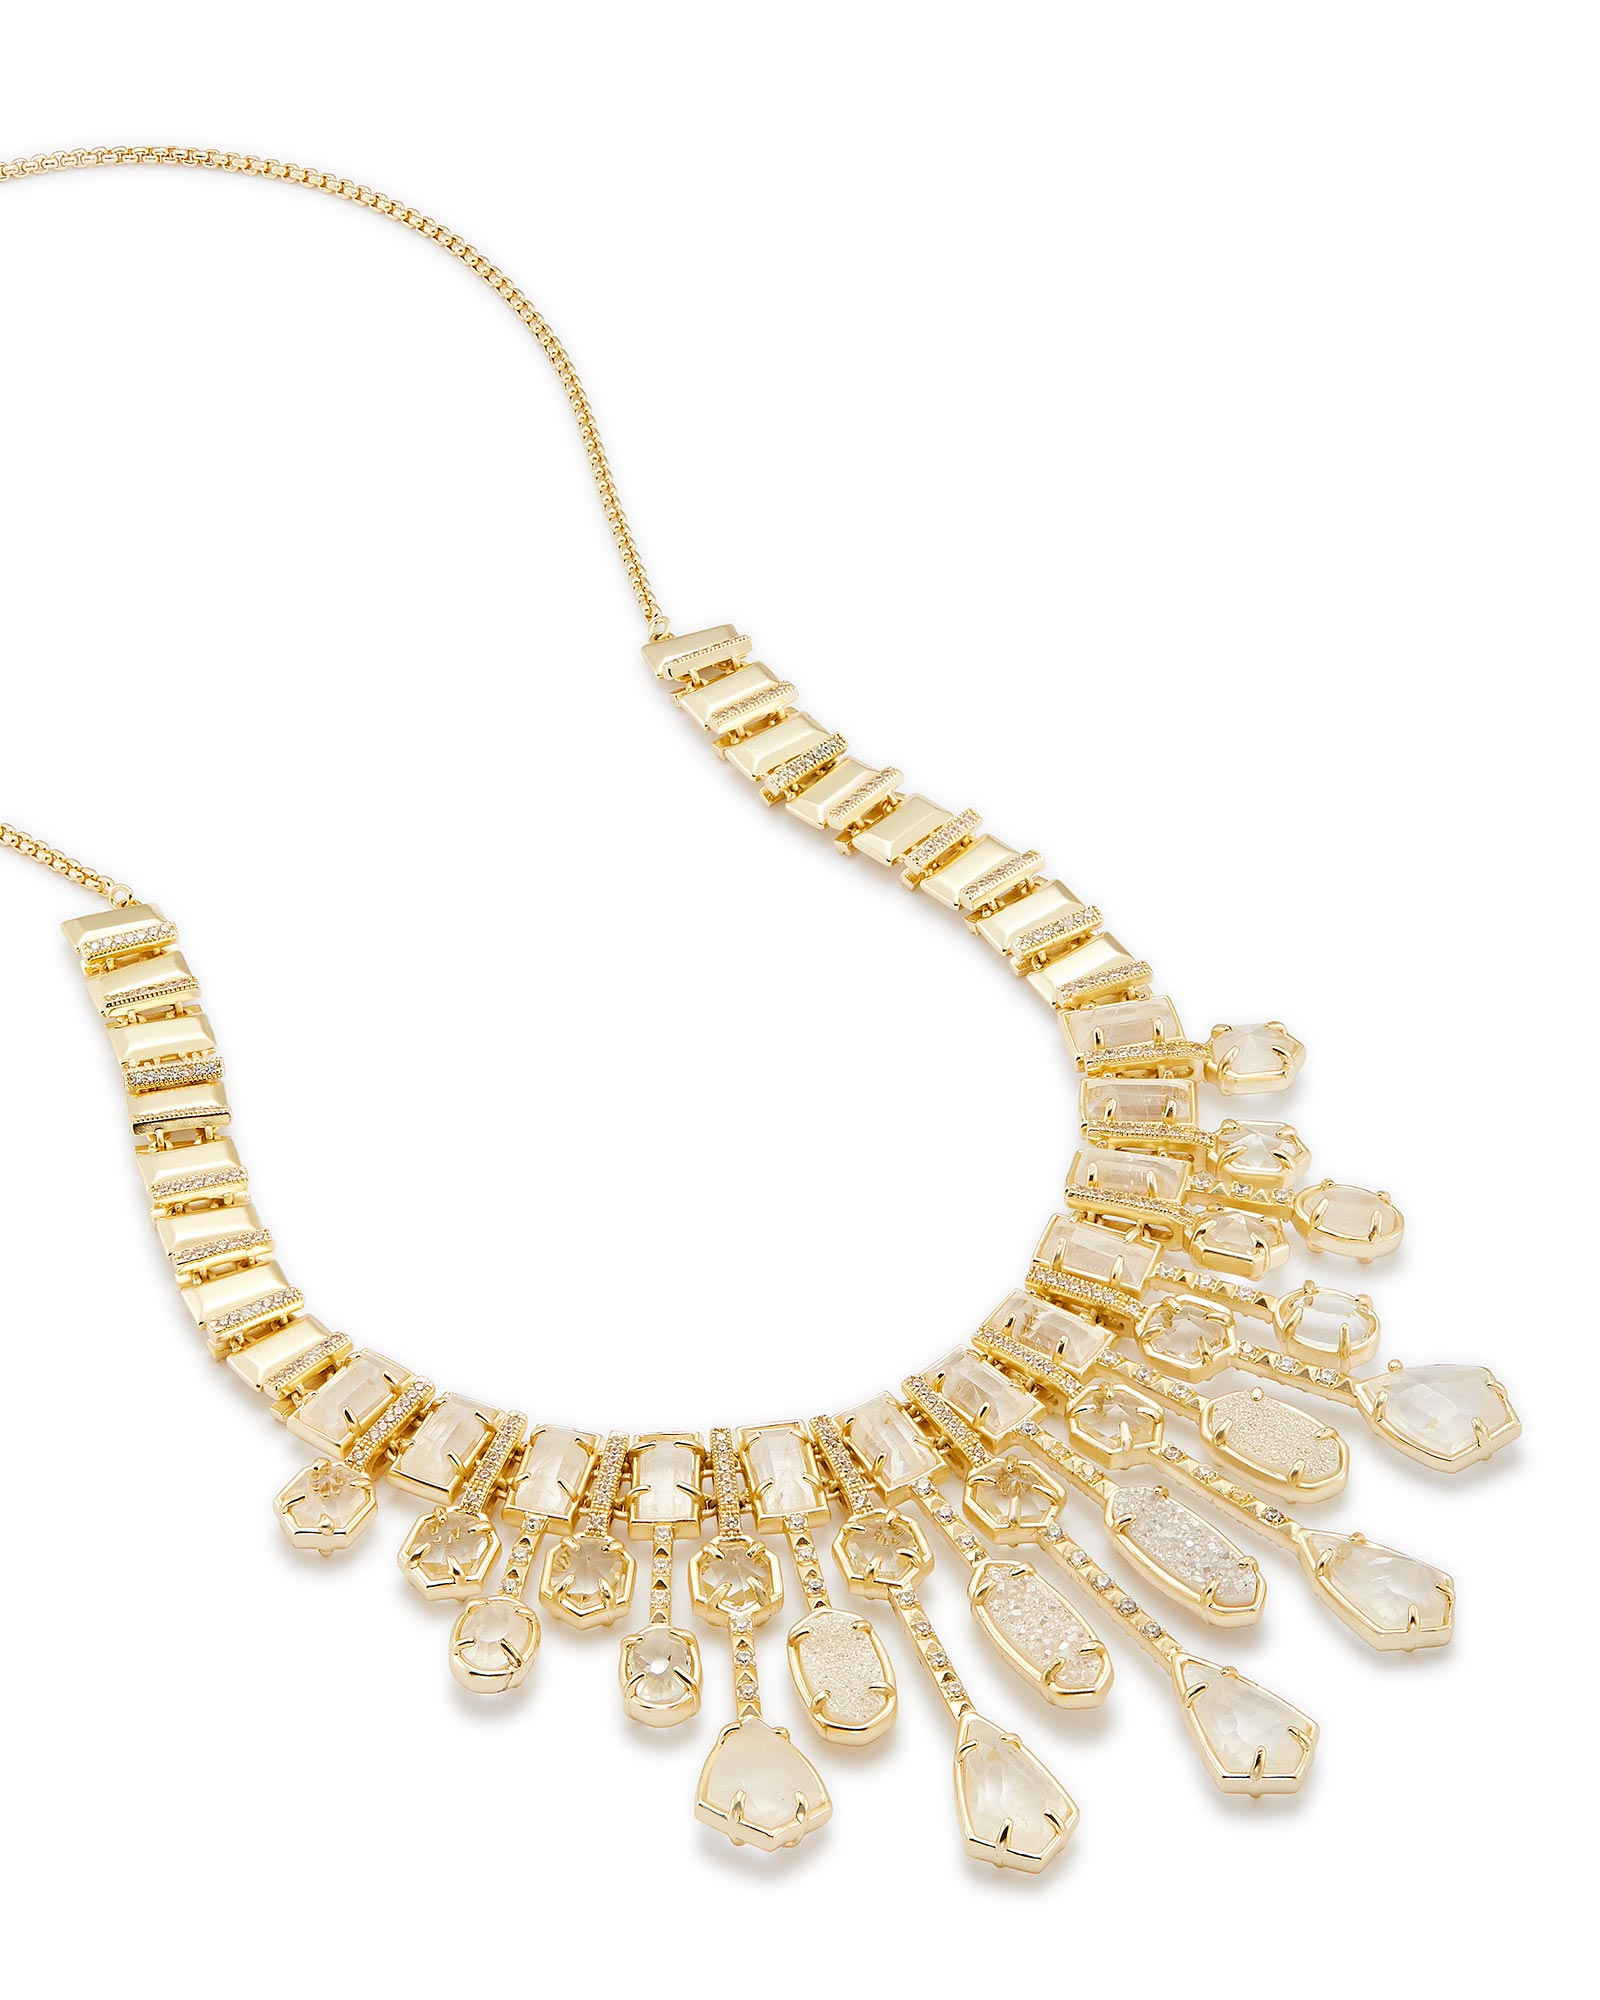 Bette Statement Necklace in Gold